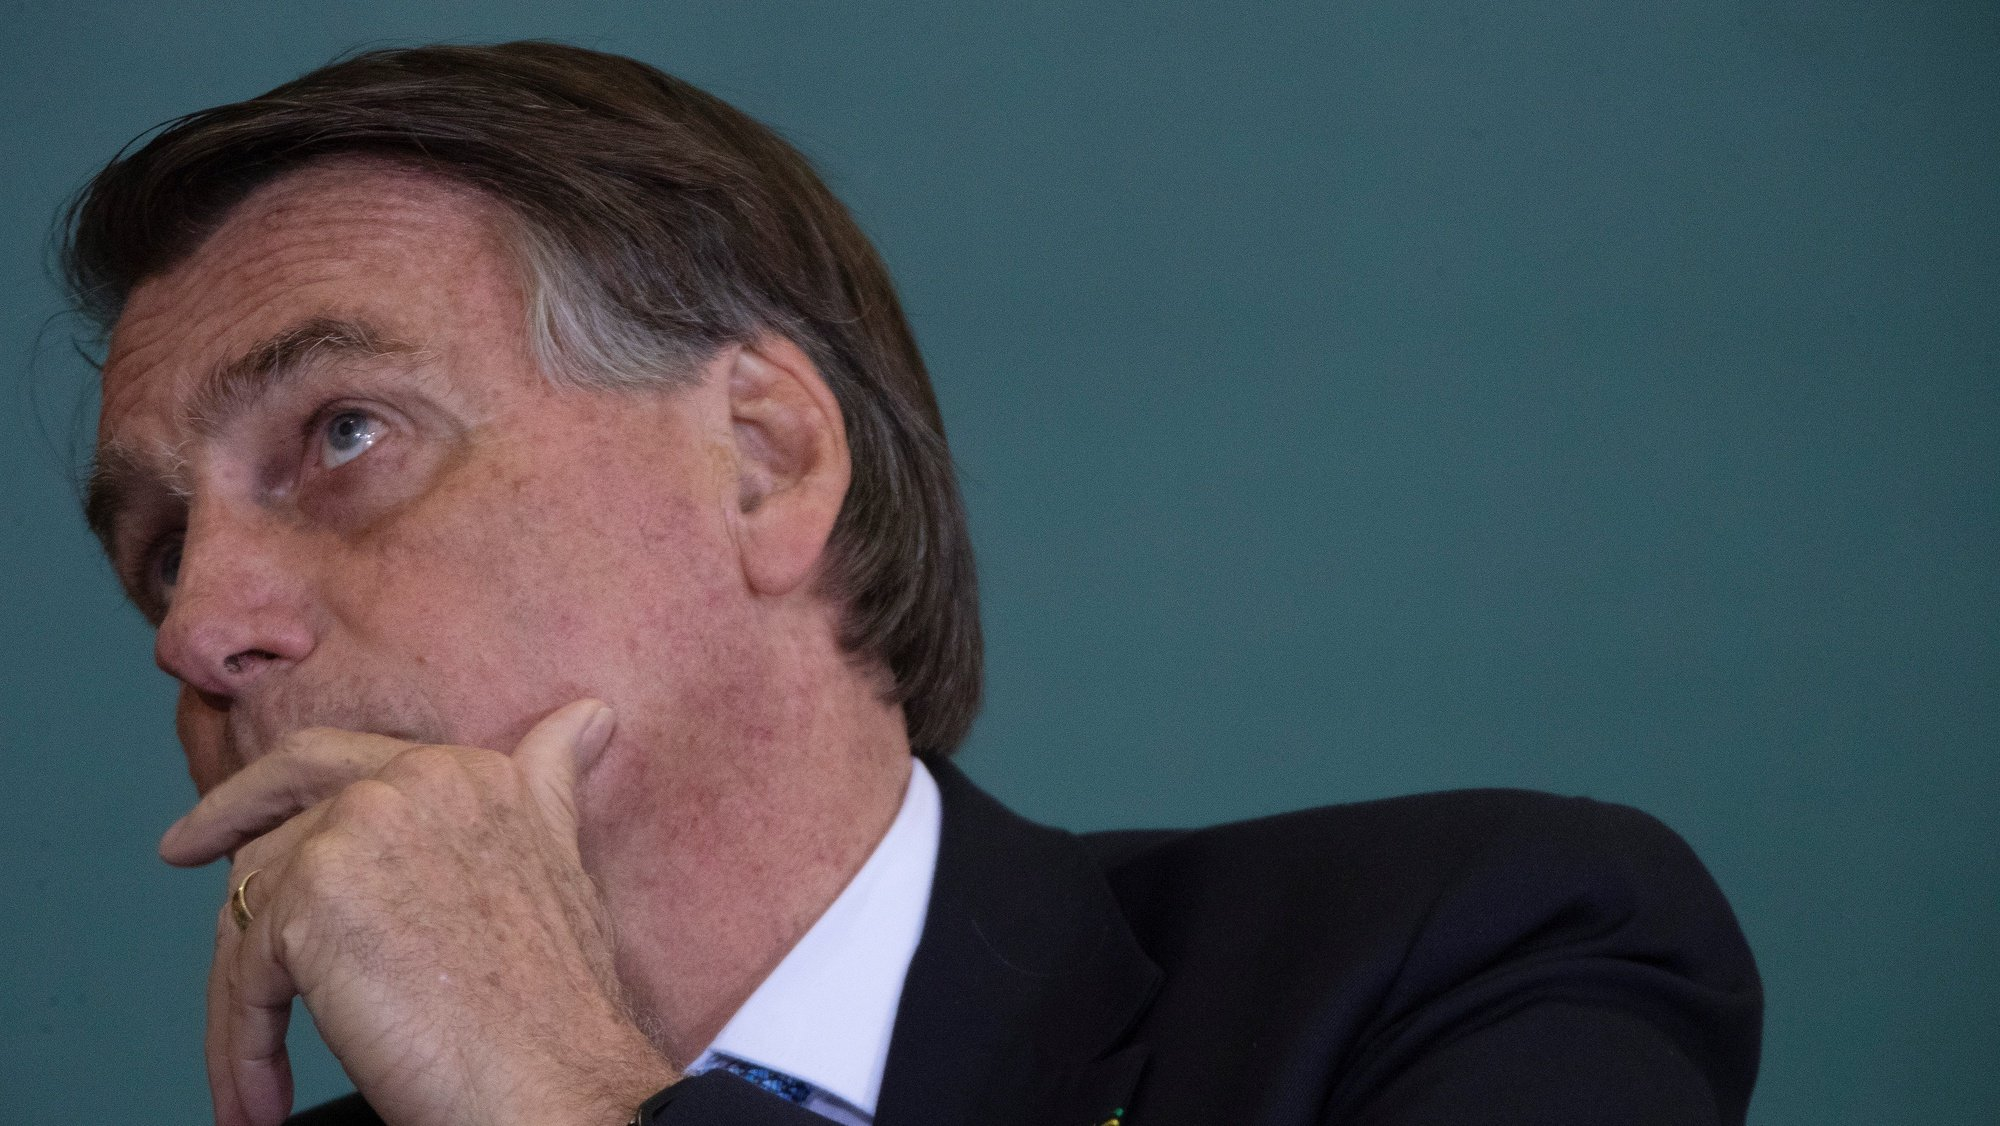 epa09512184 Brazilian President Jair Bolsonaro participates in a ceremony of Modernization of the Standards of Safety and Health at Work at the Palacio do Planalto in Brasilia, Brazil, 07 October 2021. The Senate commission investigating the Brazilian government's management of covid-19 extended its interrogations on 07 October due to new suspicions that President Jair Bolsonaro is still pressing for ineffective remedies.  EPA/JOEDSON ALVES